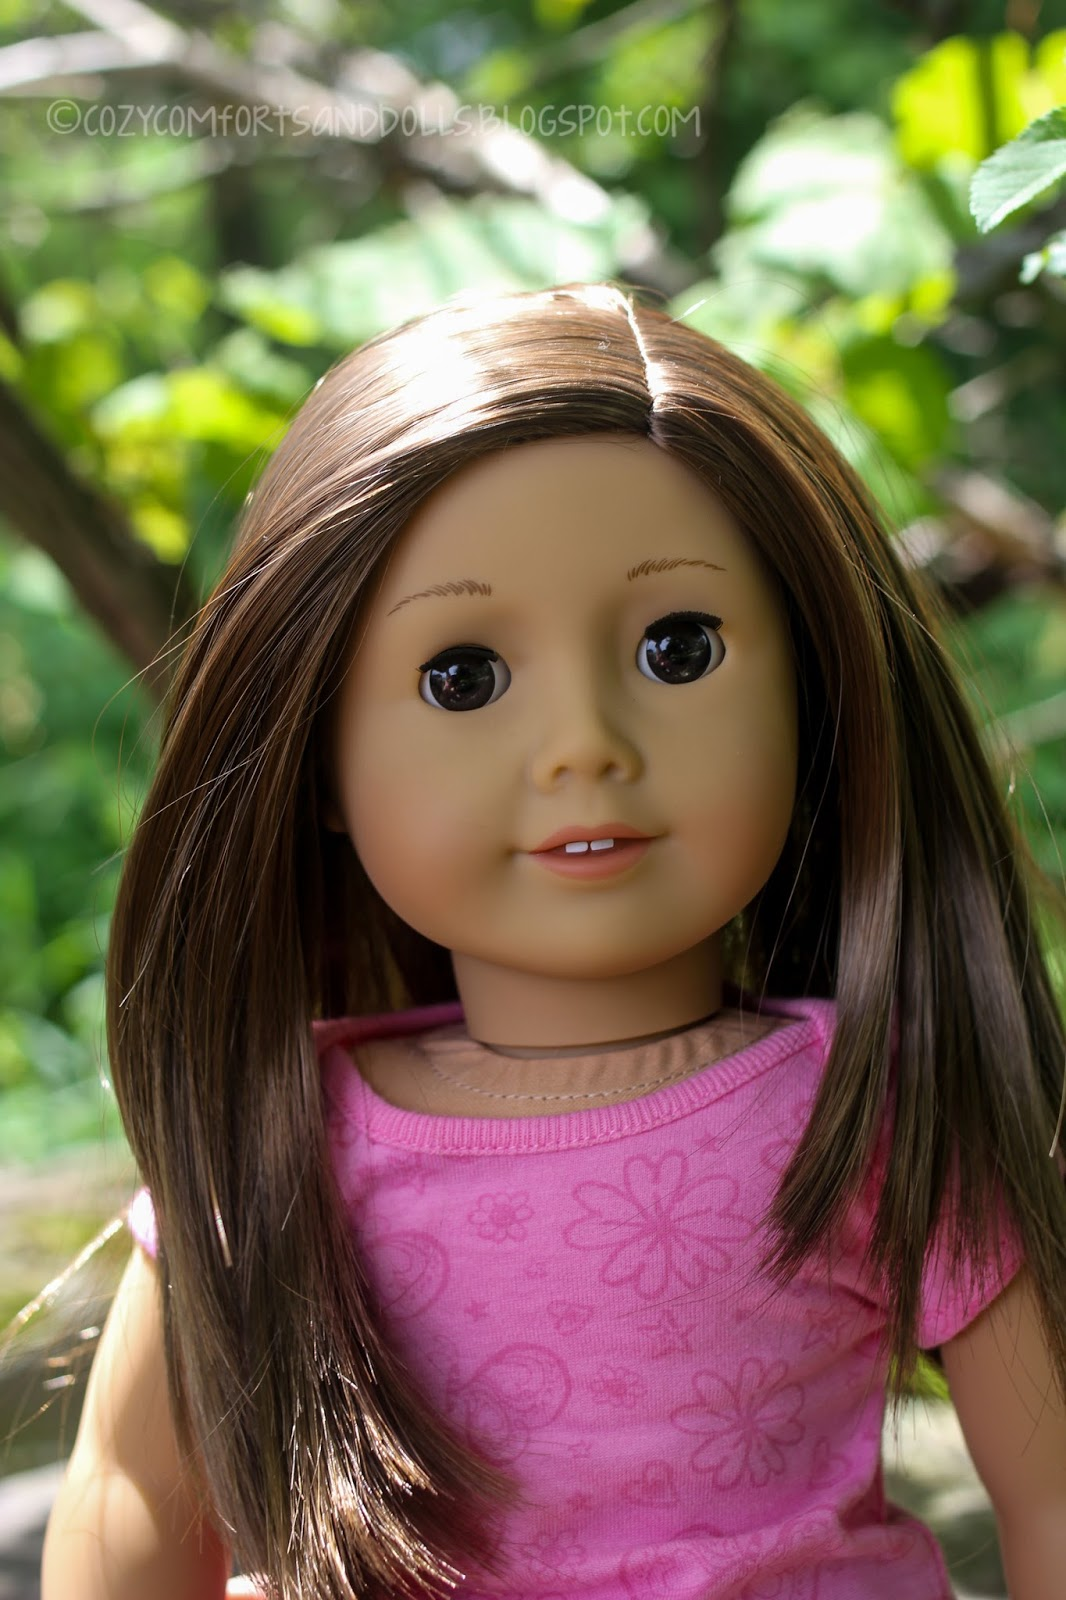 Cozy Comforts And Dolls: My American Girl Doll #59